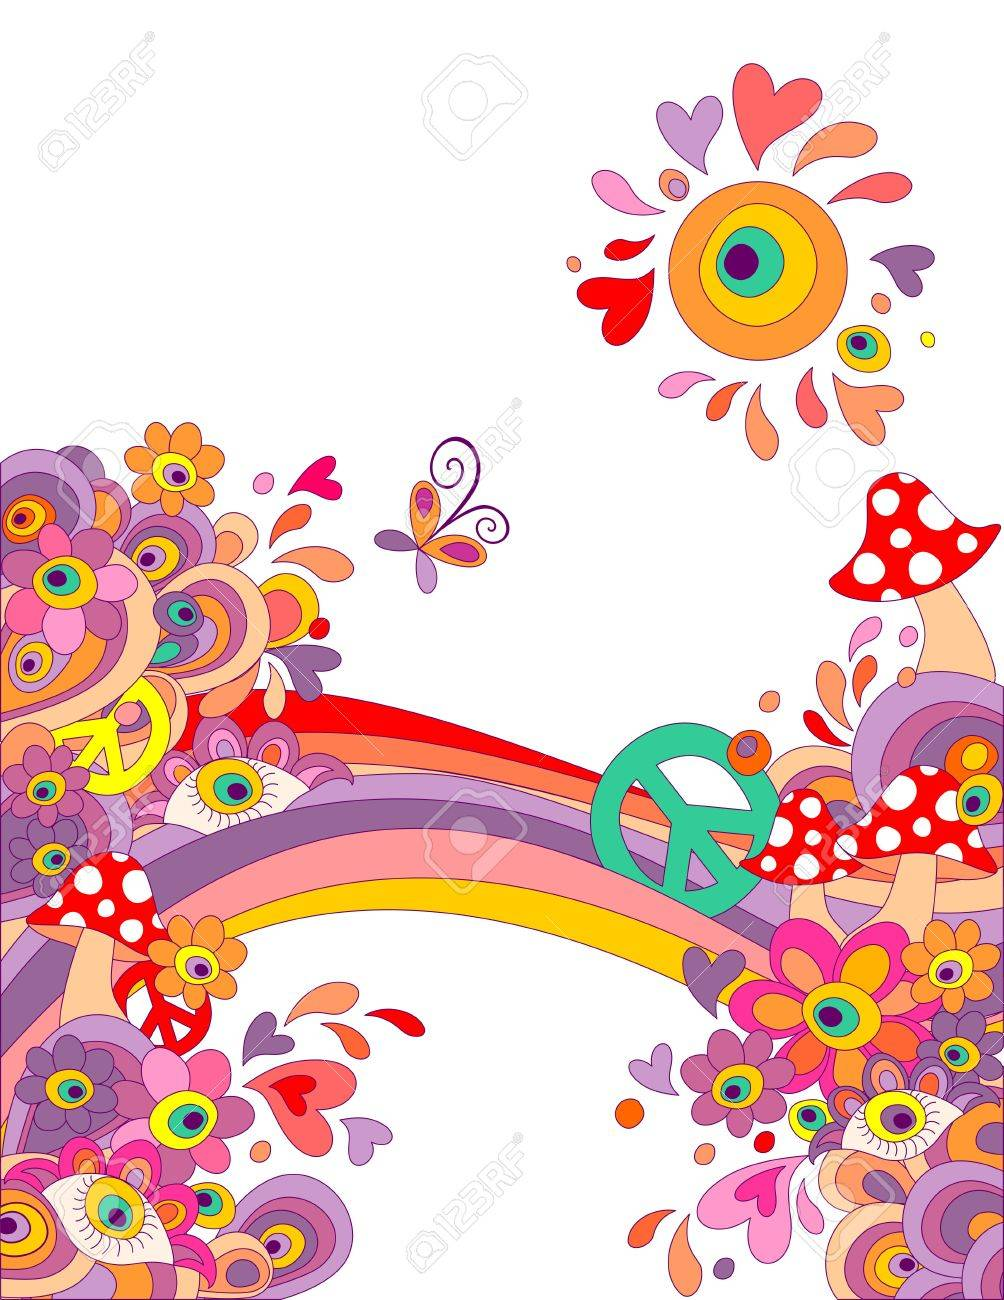 Summery hippie background with abstract colorful flowers mushrooms summery hippie background with abstract colorful flowers mushrooms peace symbol and rainbow stock vector voltagebd Choice Image